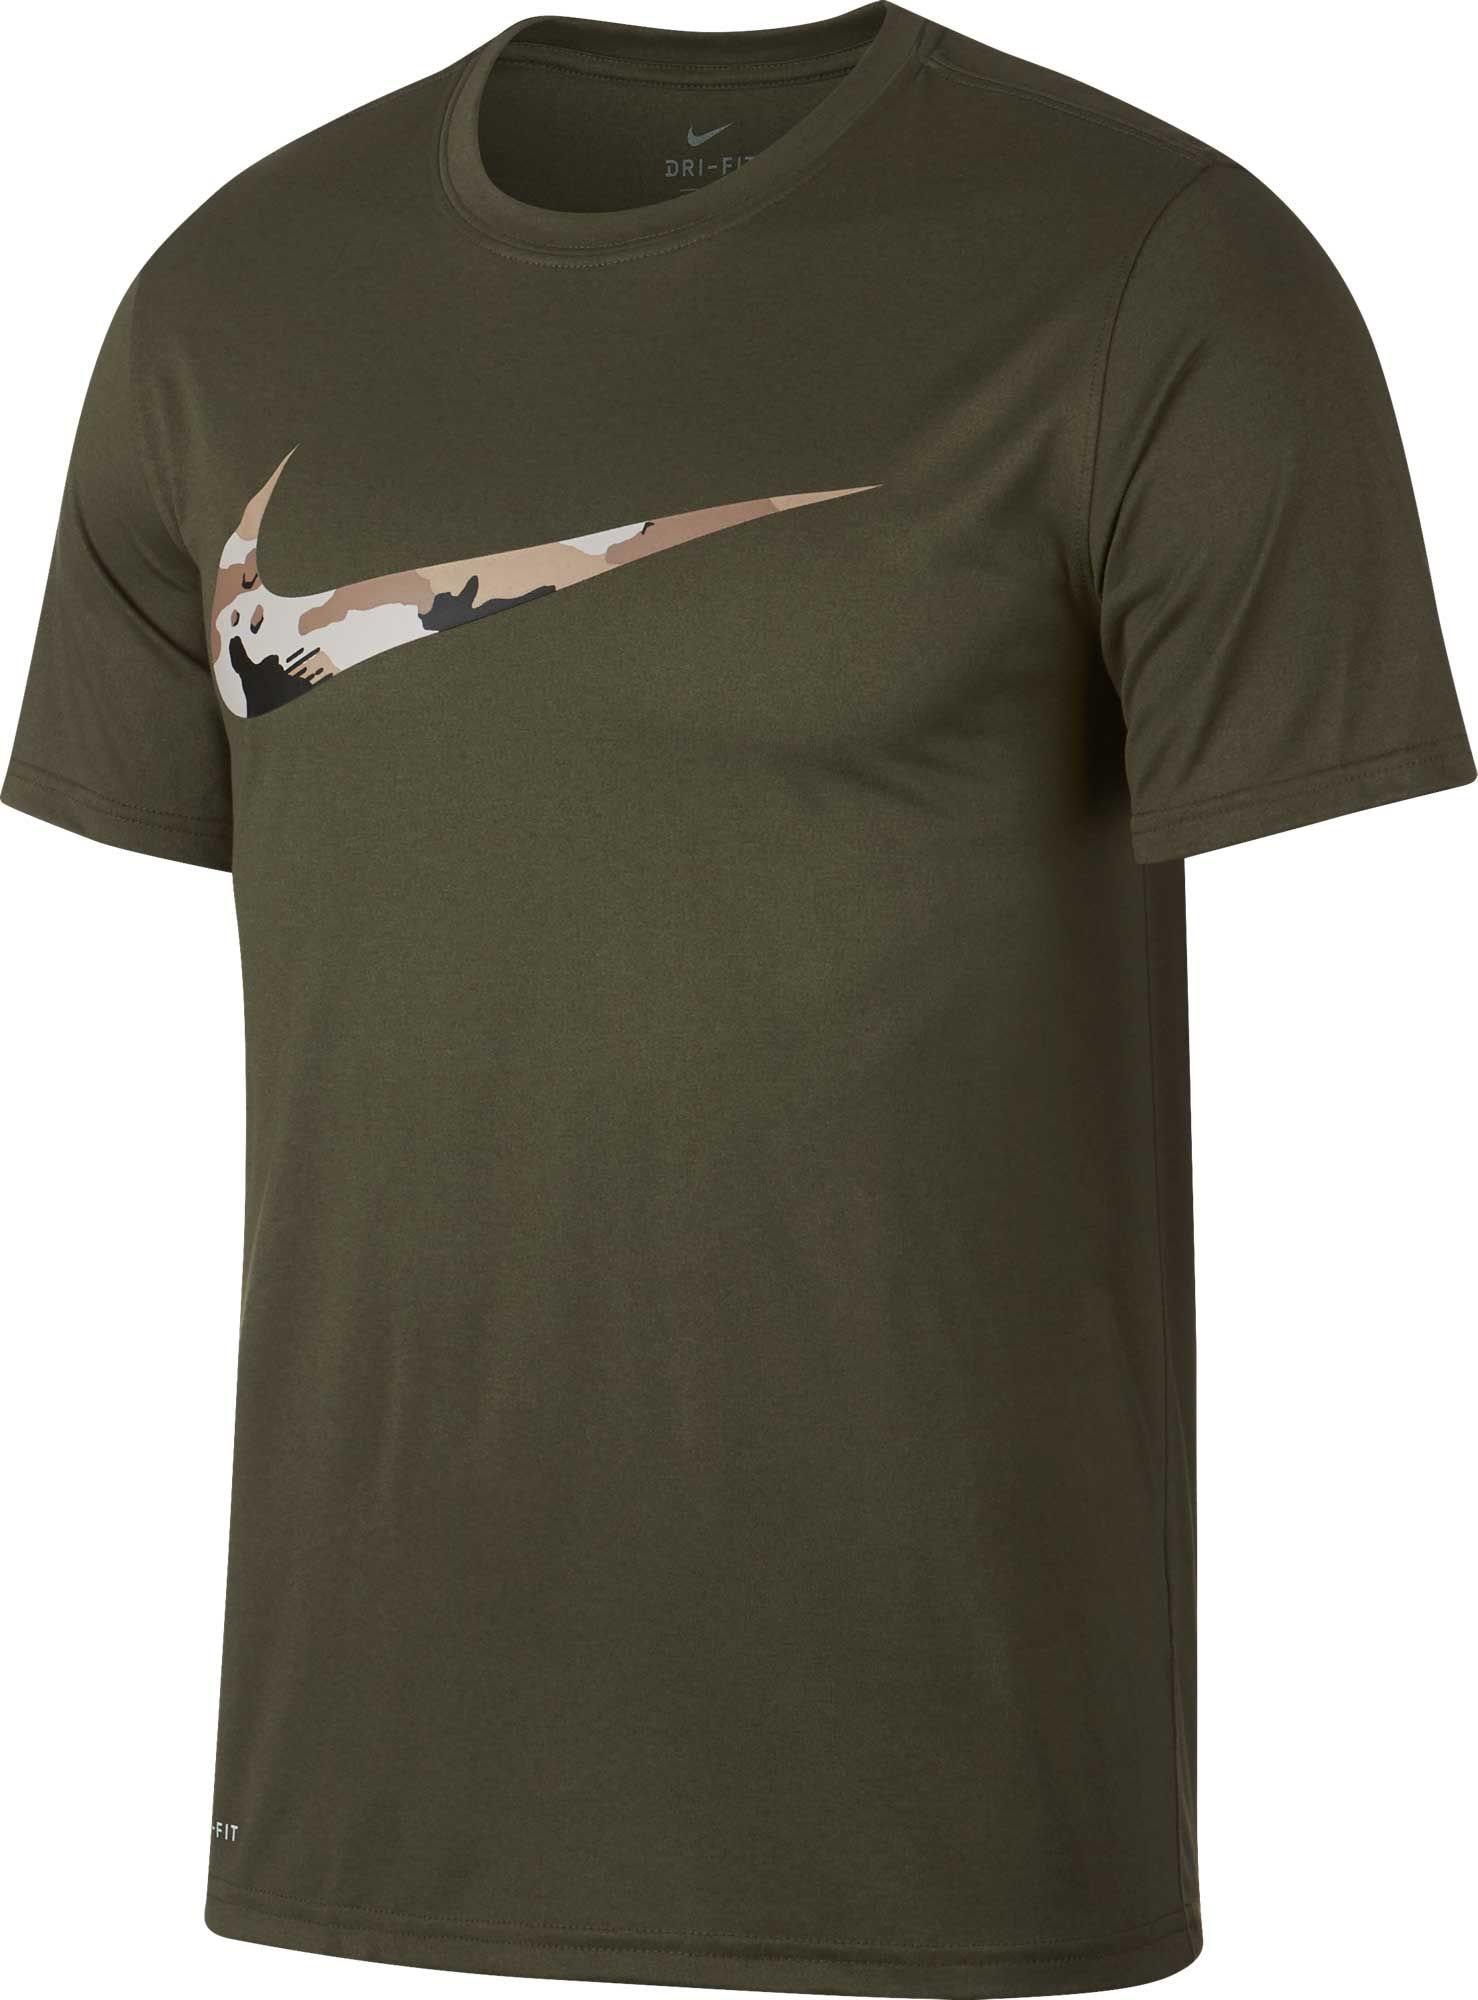 Nike Mens Dry Legend Camo Swoosh Graphic Tee